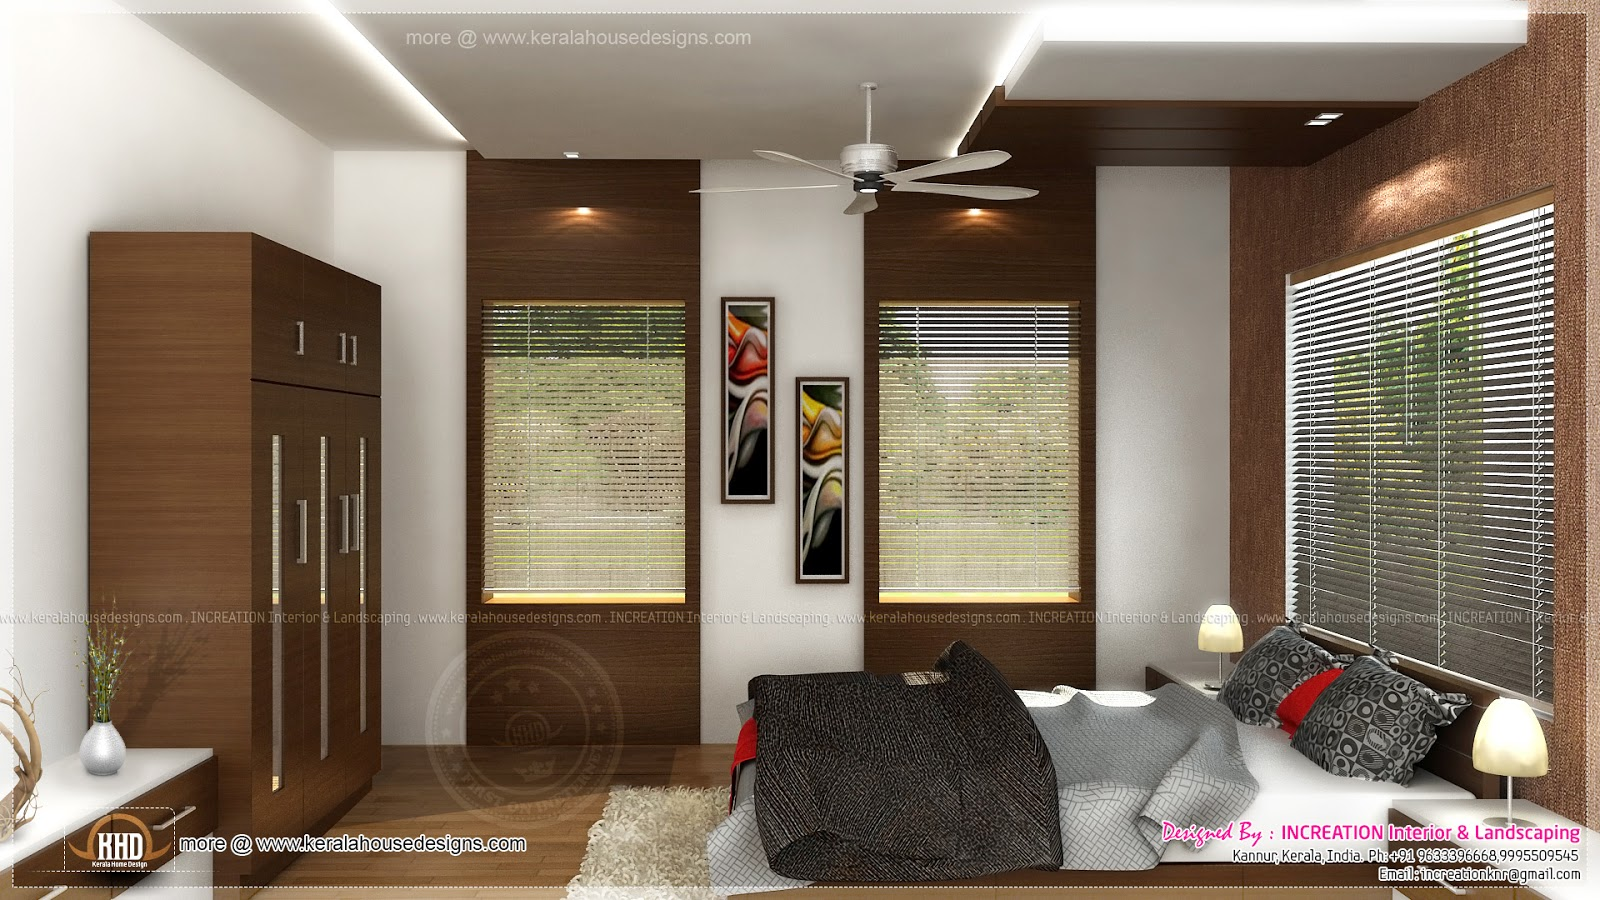 Interior designs from kannur kerala home kerala plans - Interior house design ...